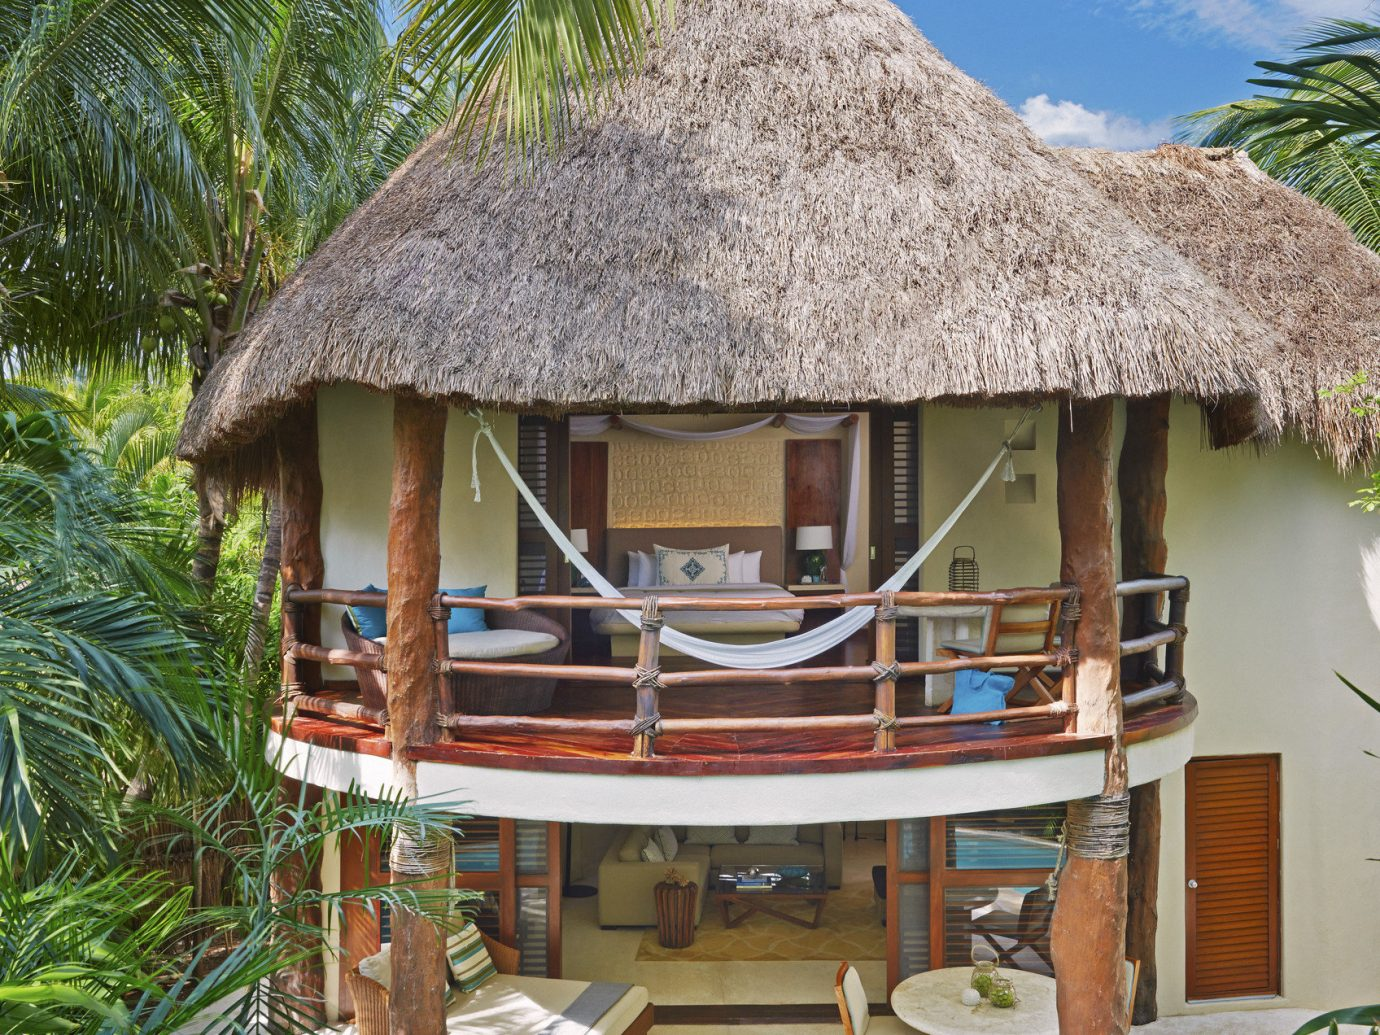 Beach Honeymoon Hotels Mexico Romance Tulum tree outdoor chair property Resort hut thatching cottage roof Jungle area furniture surrounded